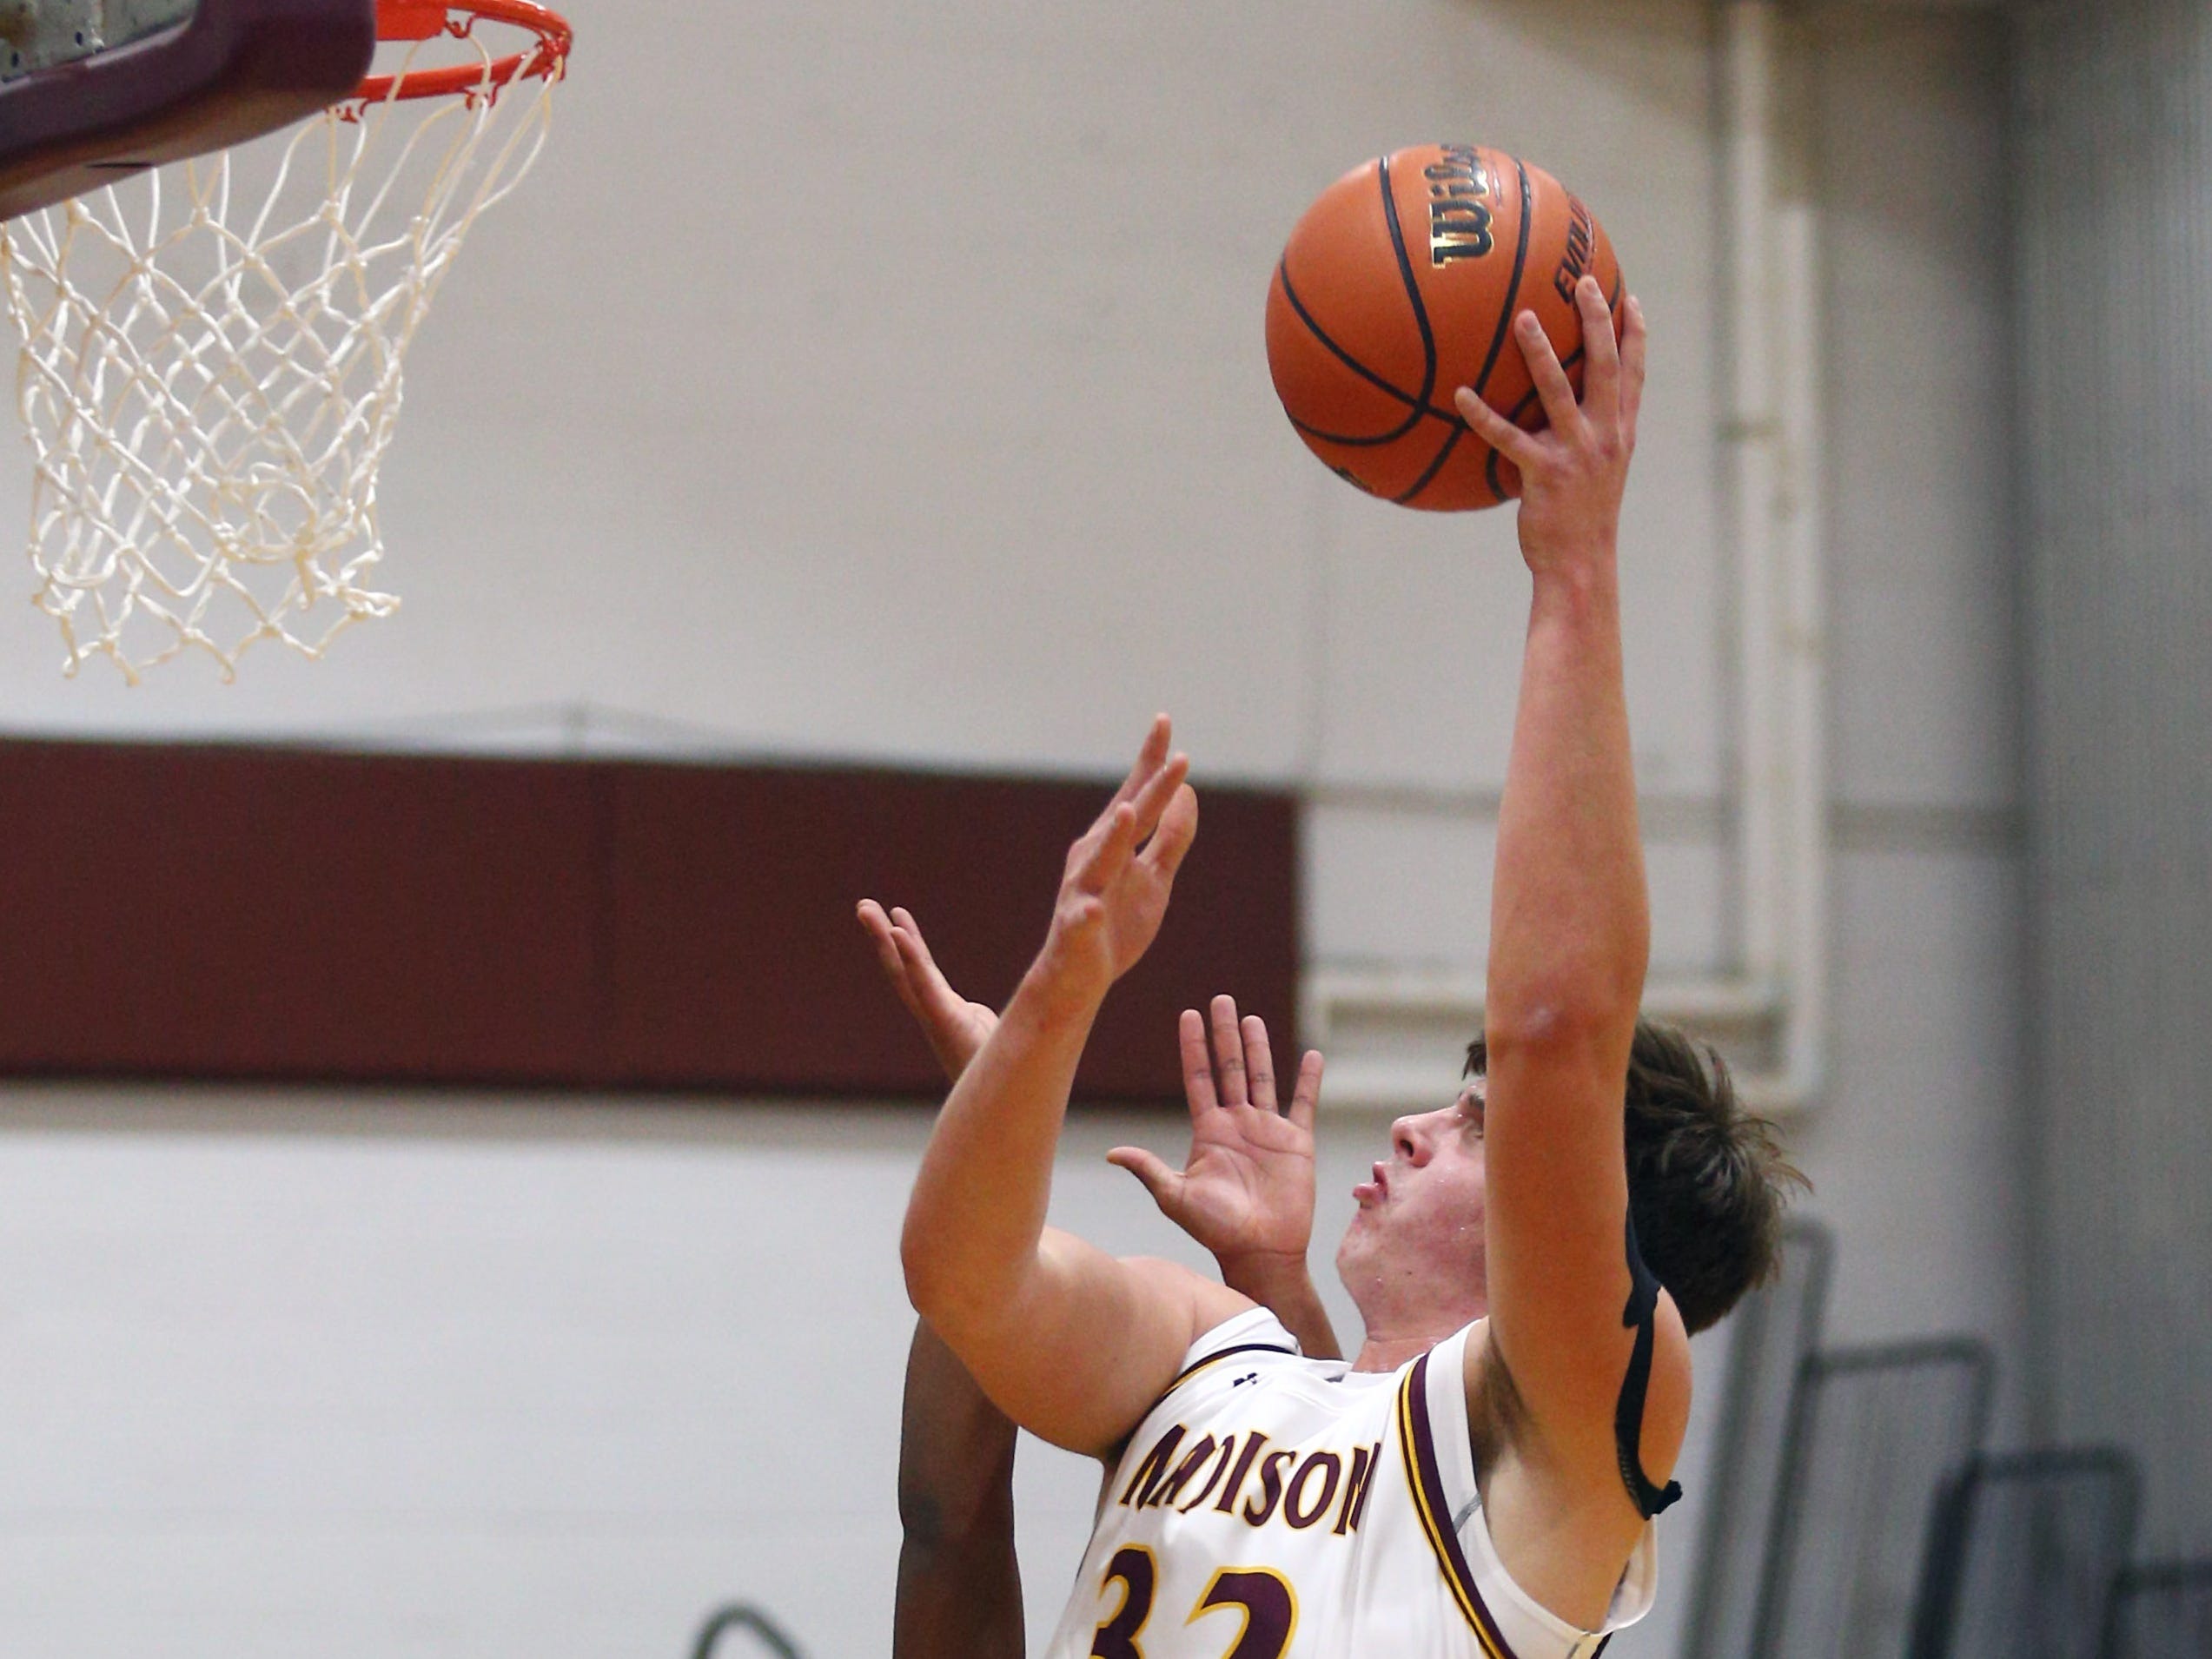 Madison's Paul Saurer goes up for two vs Parsippany during their boys basketball game. Senior Andy Christos had 22 point surpassing his 1,000th career point. December 18, 2018, Madison, NJ